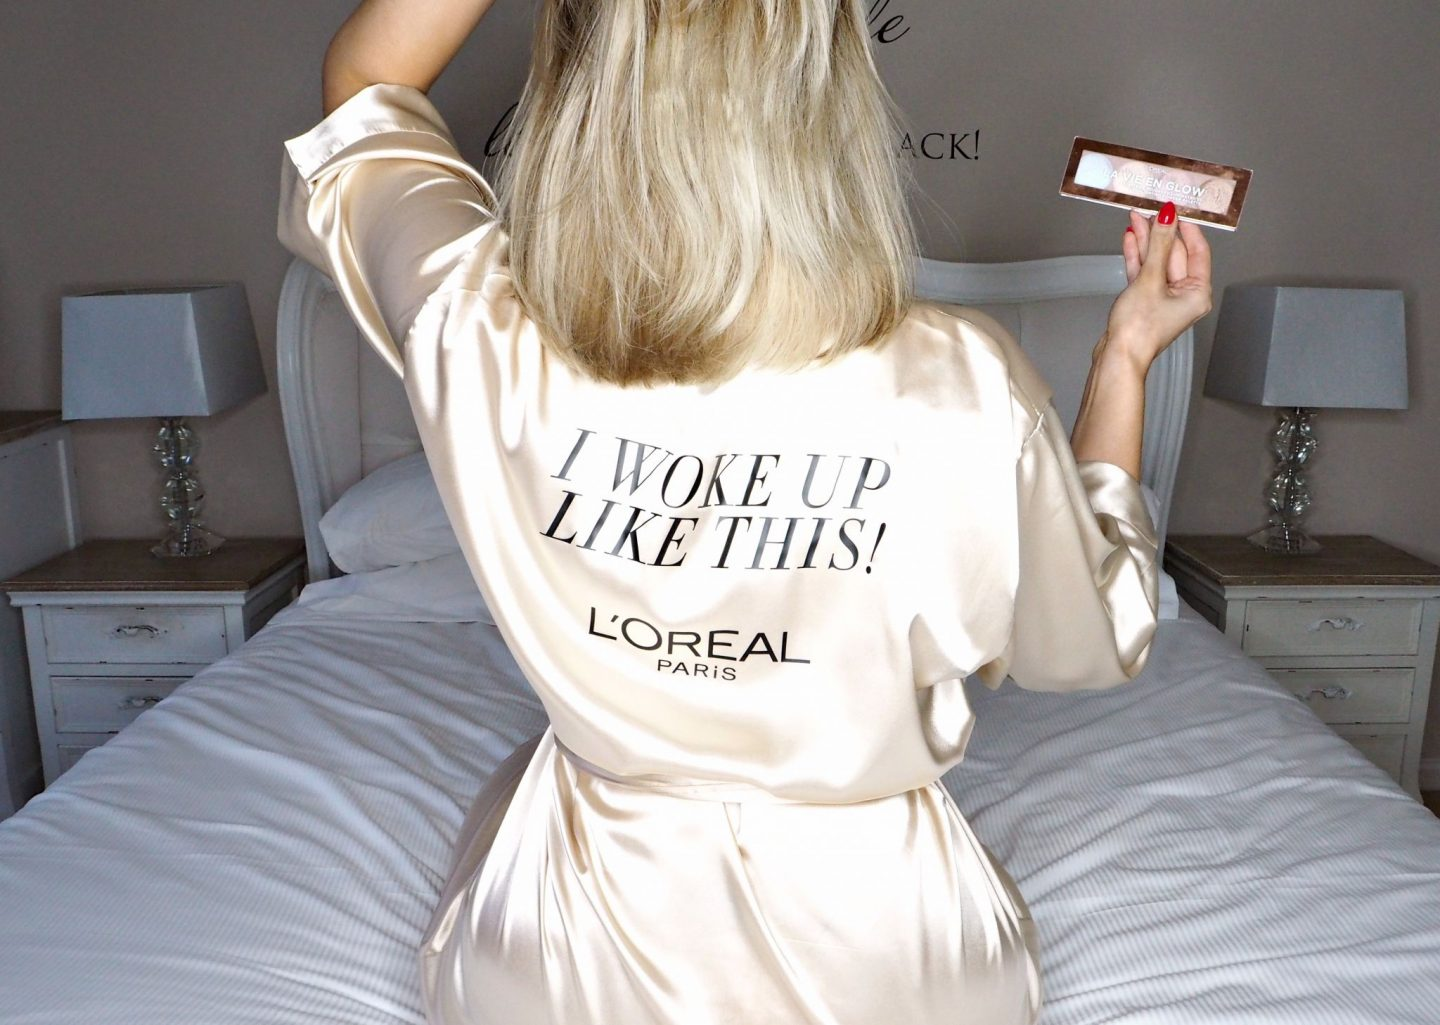 L'Oreal - I woke up like this robe